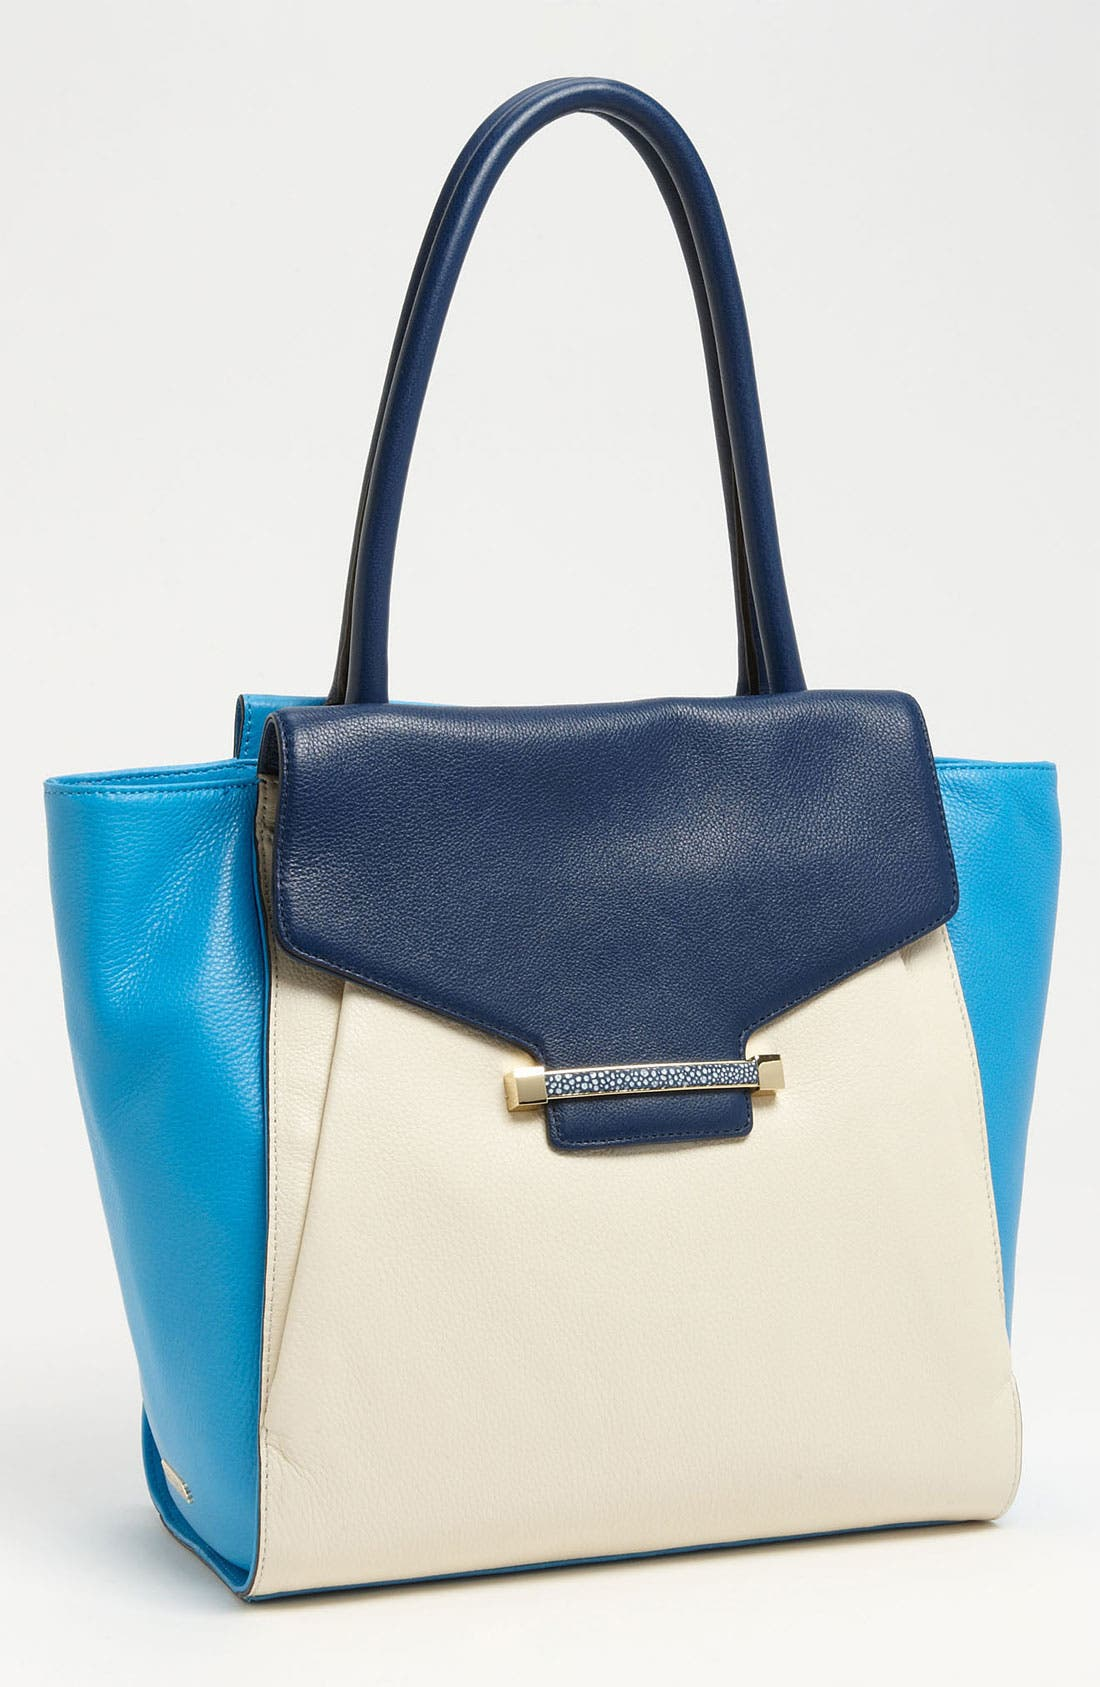 Alternate Image 1 Selected - Vince Camuto 'Julia' Tote